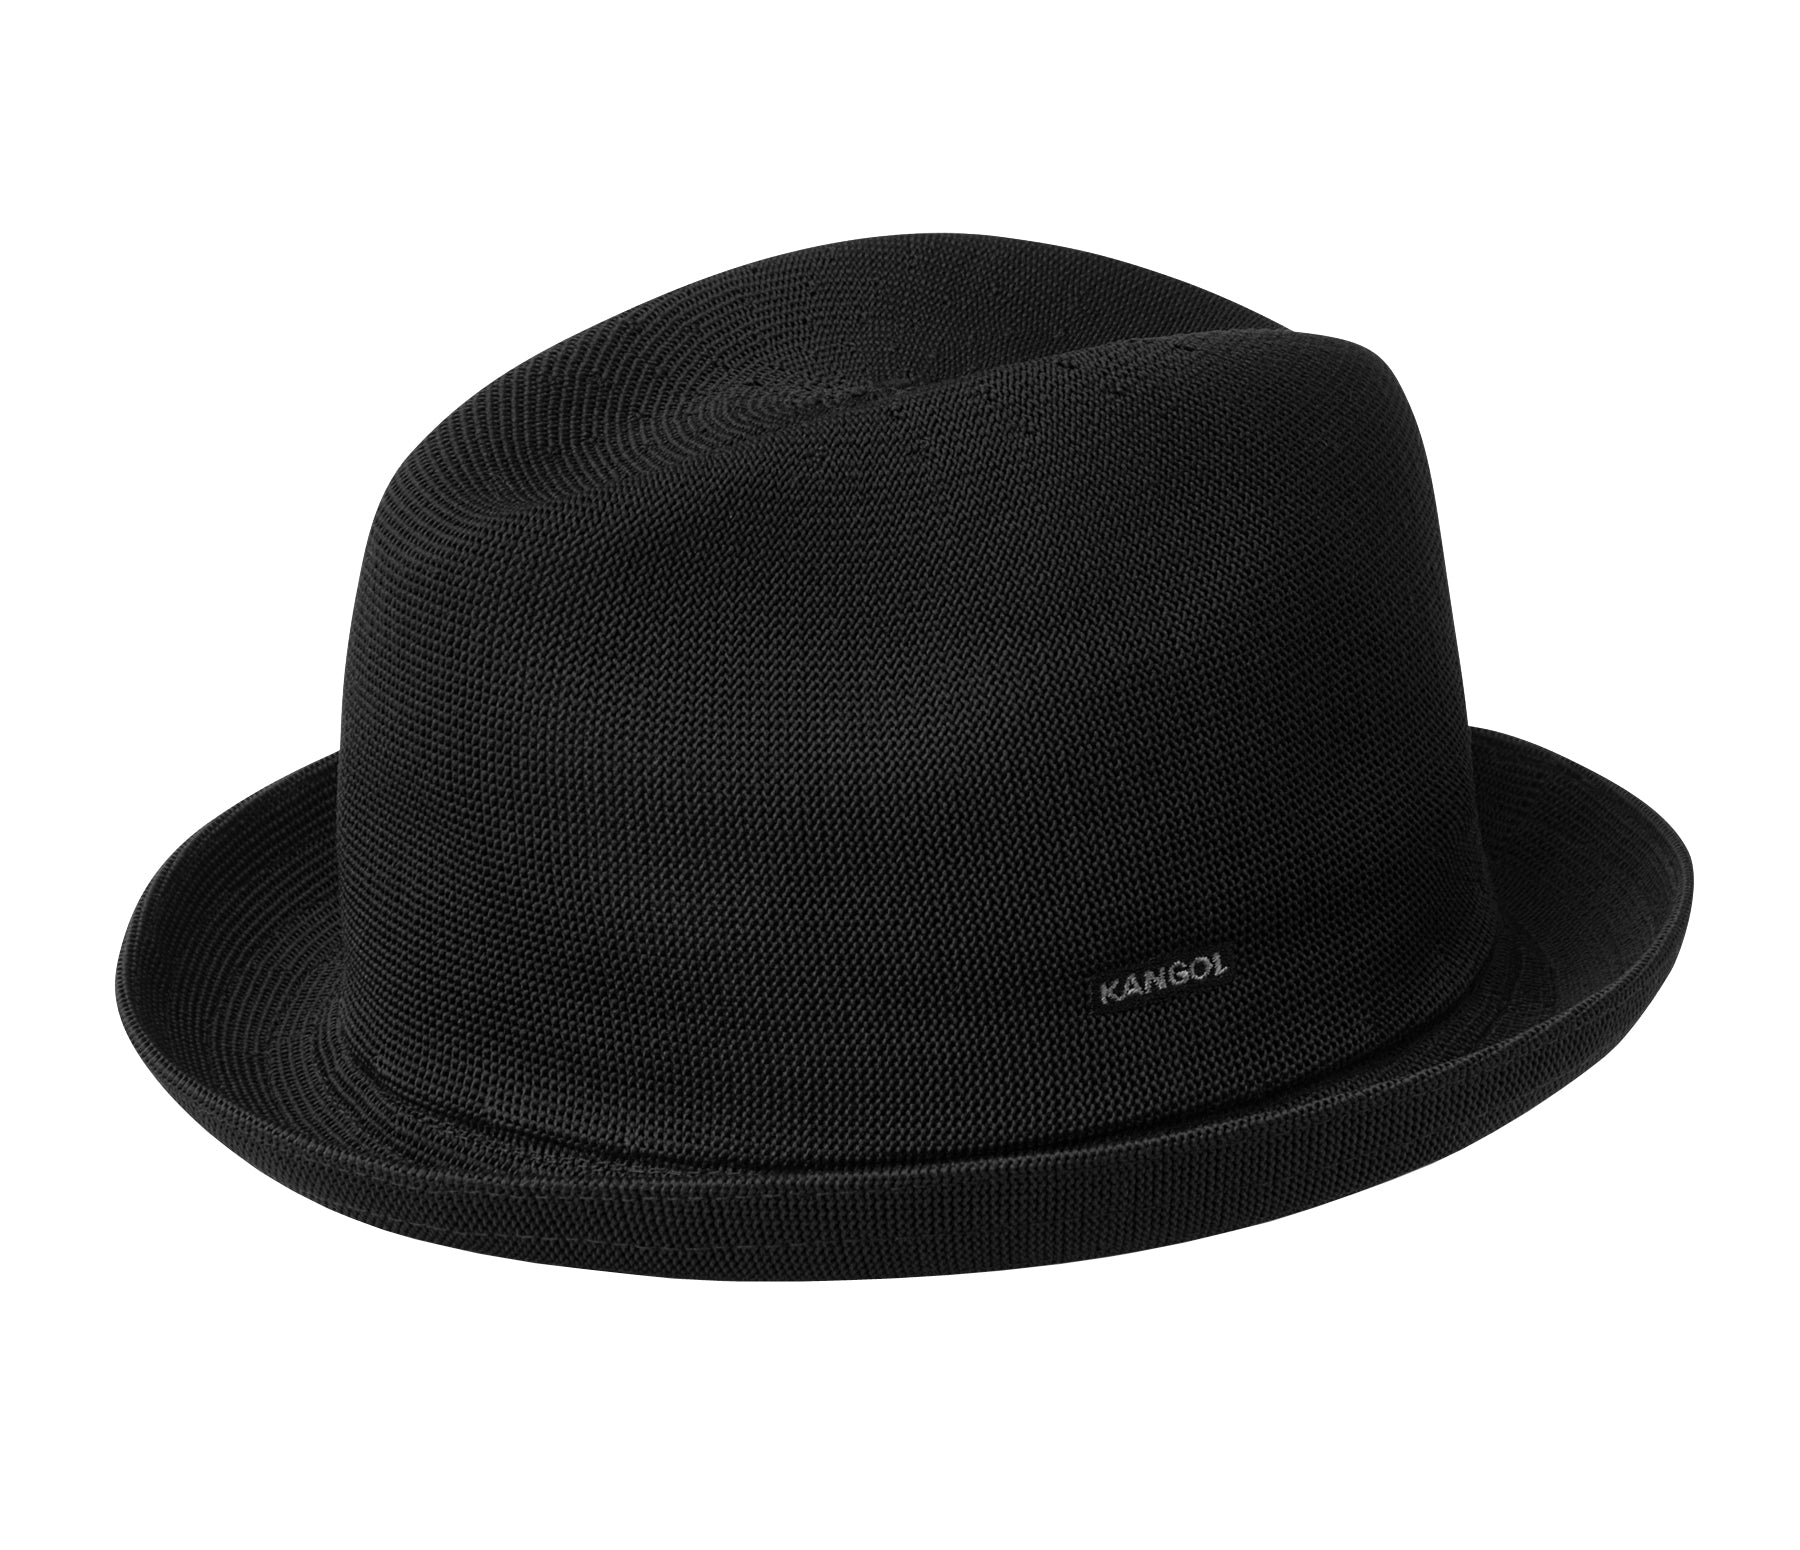 KANGOL TROPIC PLAYER SCARLET · KANGOL TROPIC PLAYER BLACK ... 3f2a8810d1a